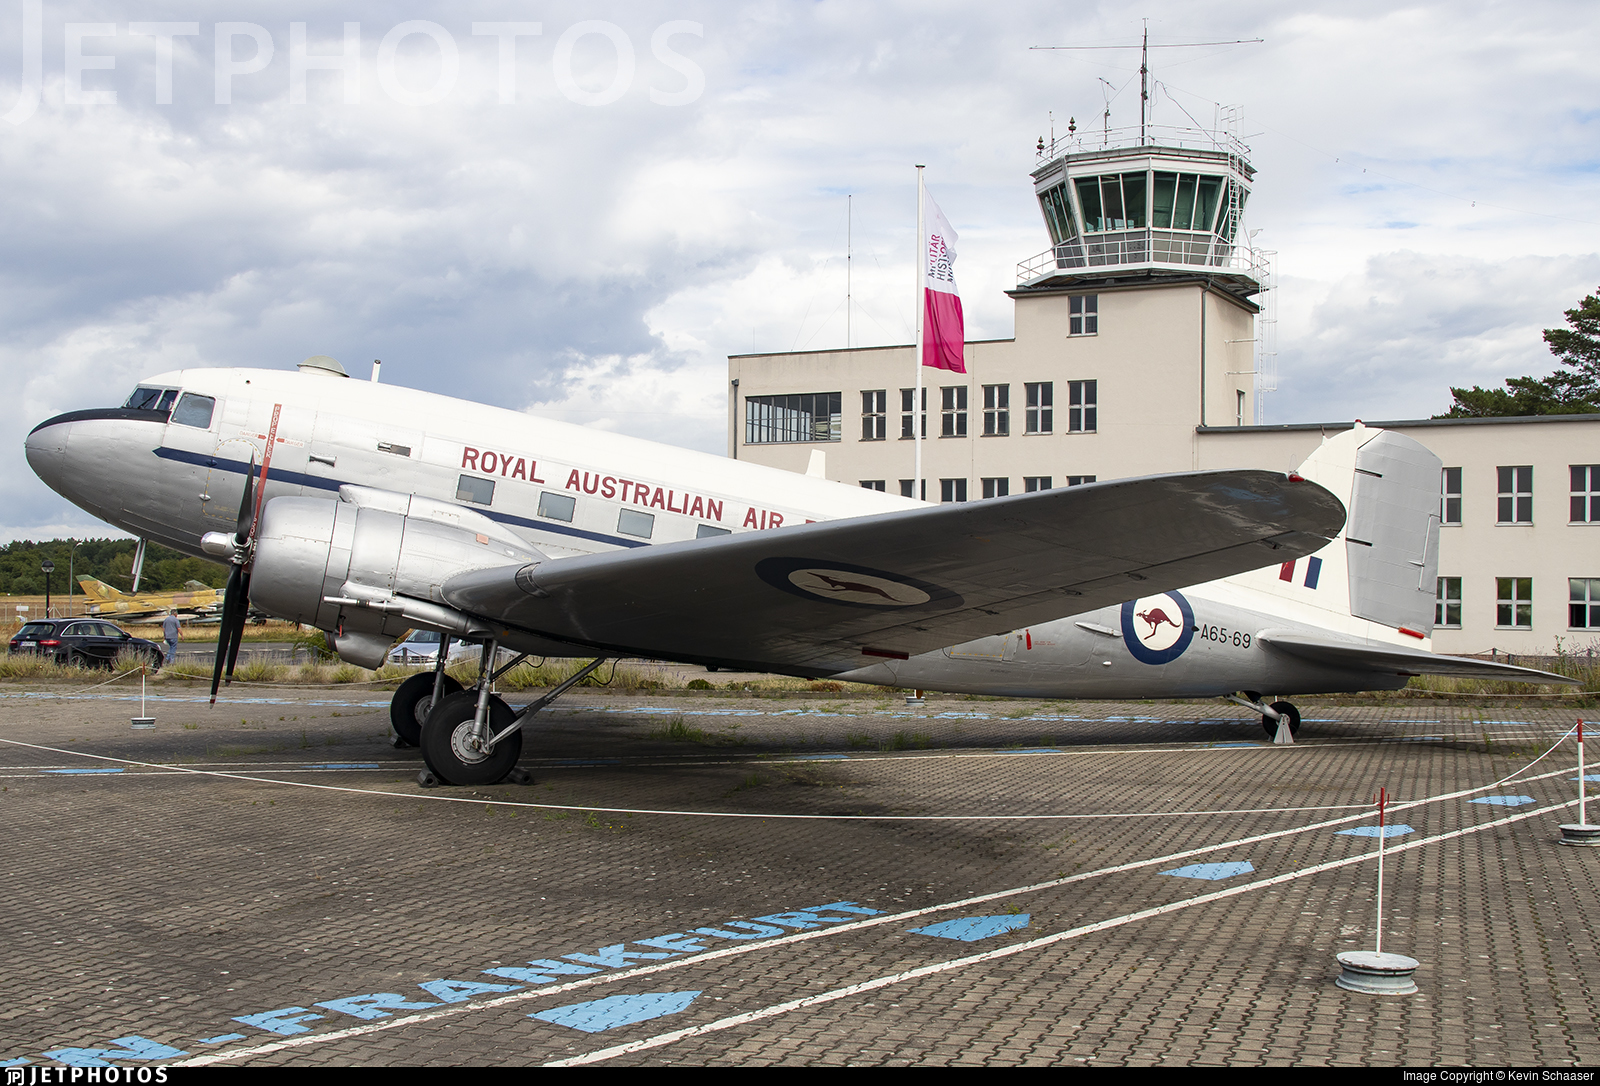 A65-69 - Douglas C-47B Skytrain - Australia - Royal Australian Air Force (RAAF)